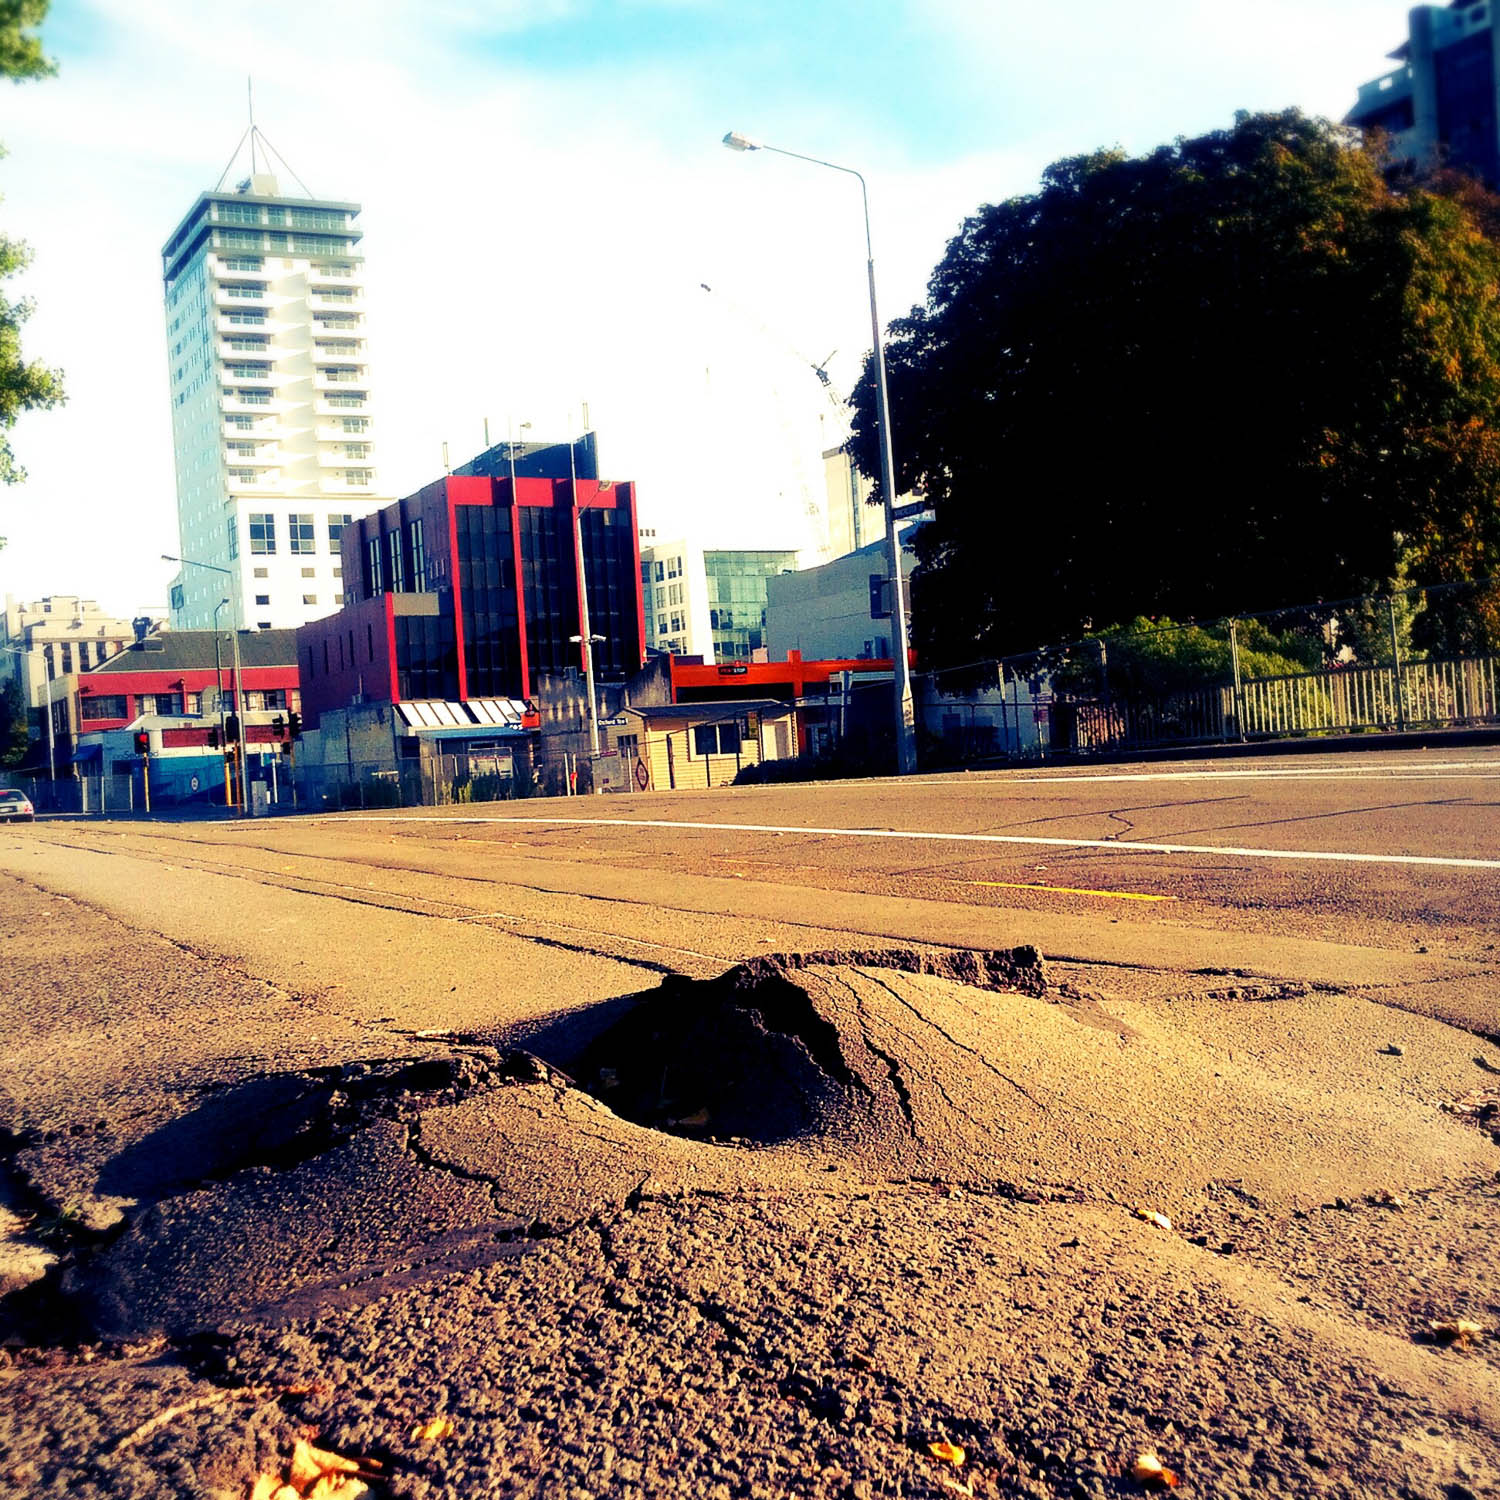 Uplifted sidewalk on a bridge in Christchurch. A relatively small reminder of the destructive nature of earthquakes. Buildings in the background in the process of being demolished.